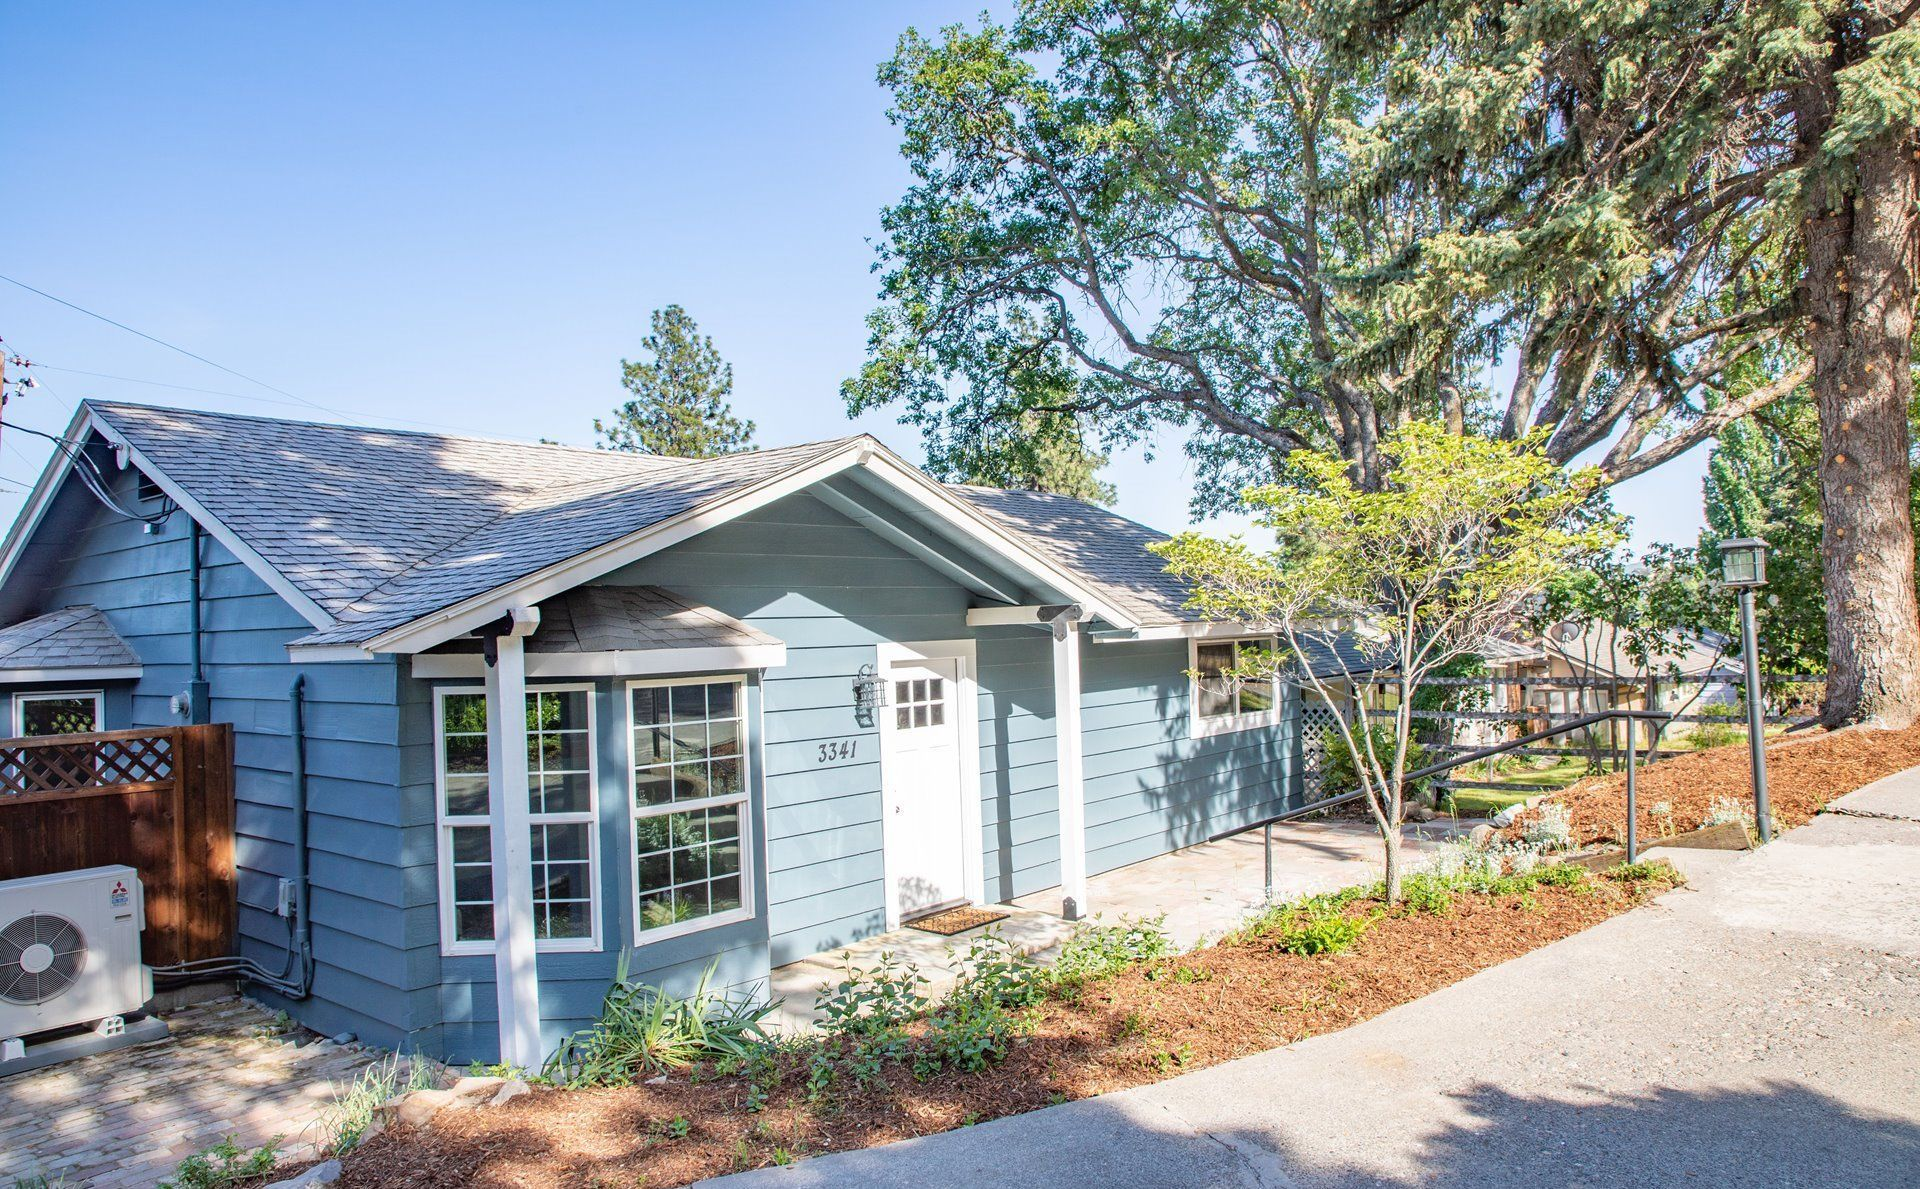 3341 W 13th Street The Dalles Price Drop